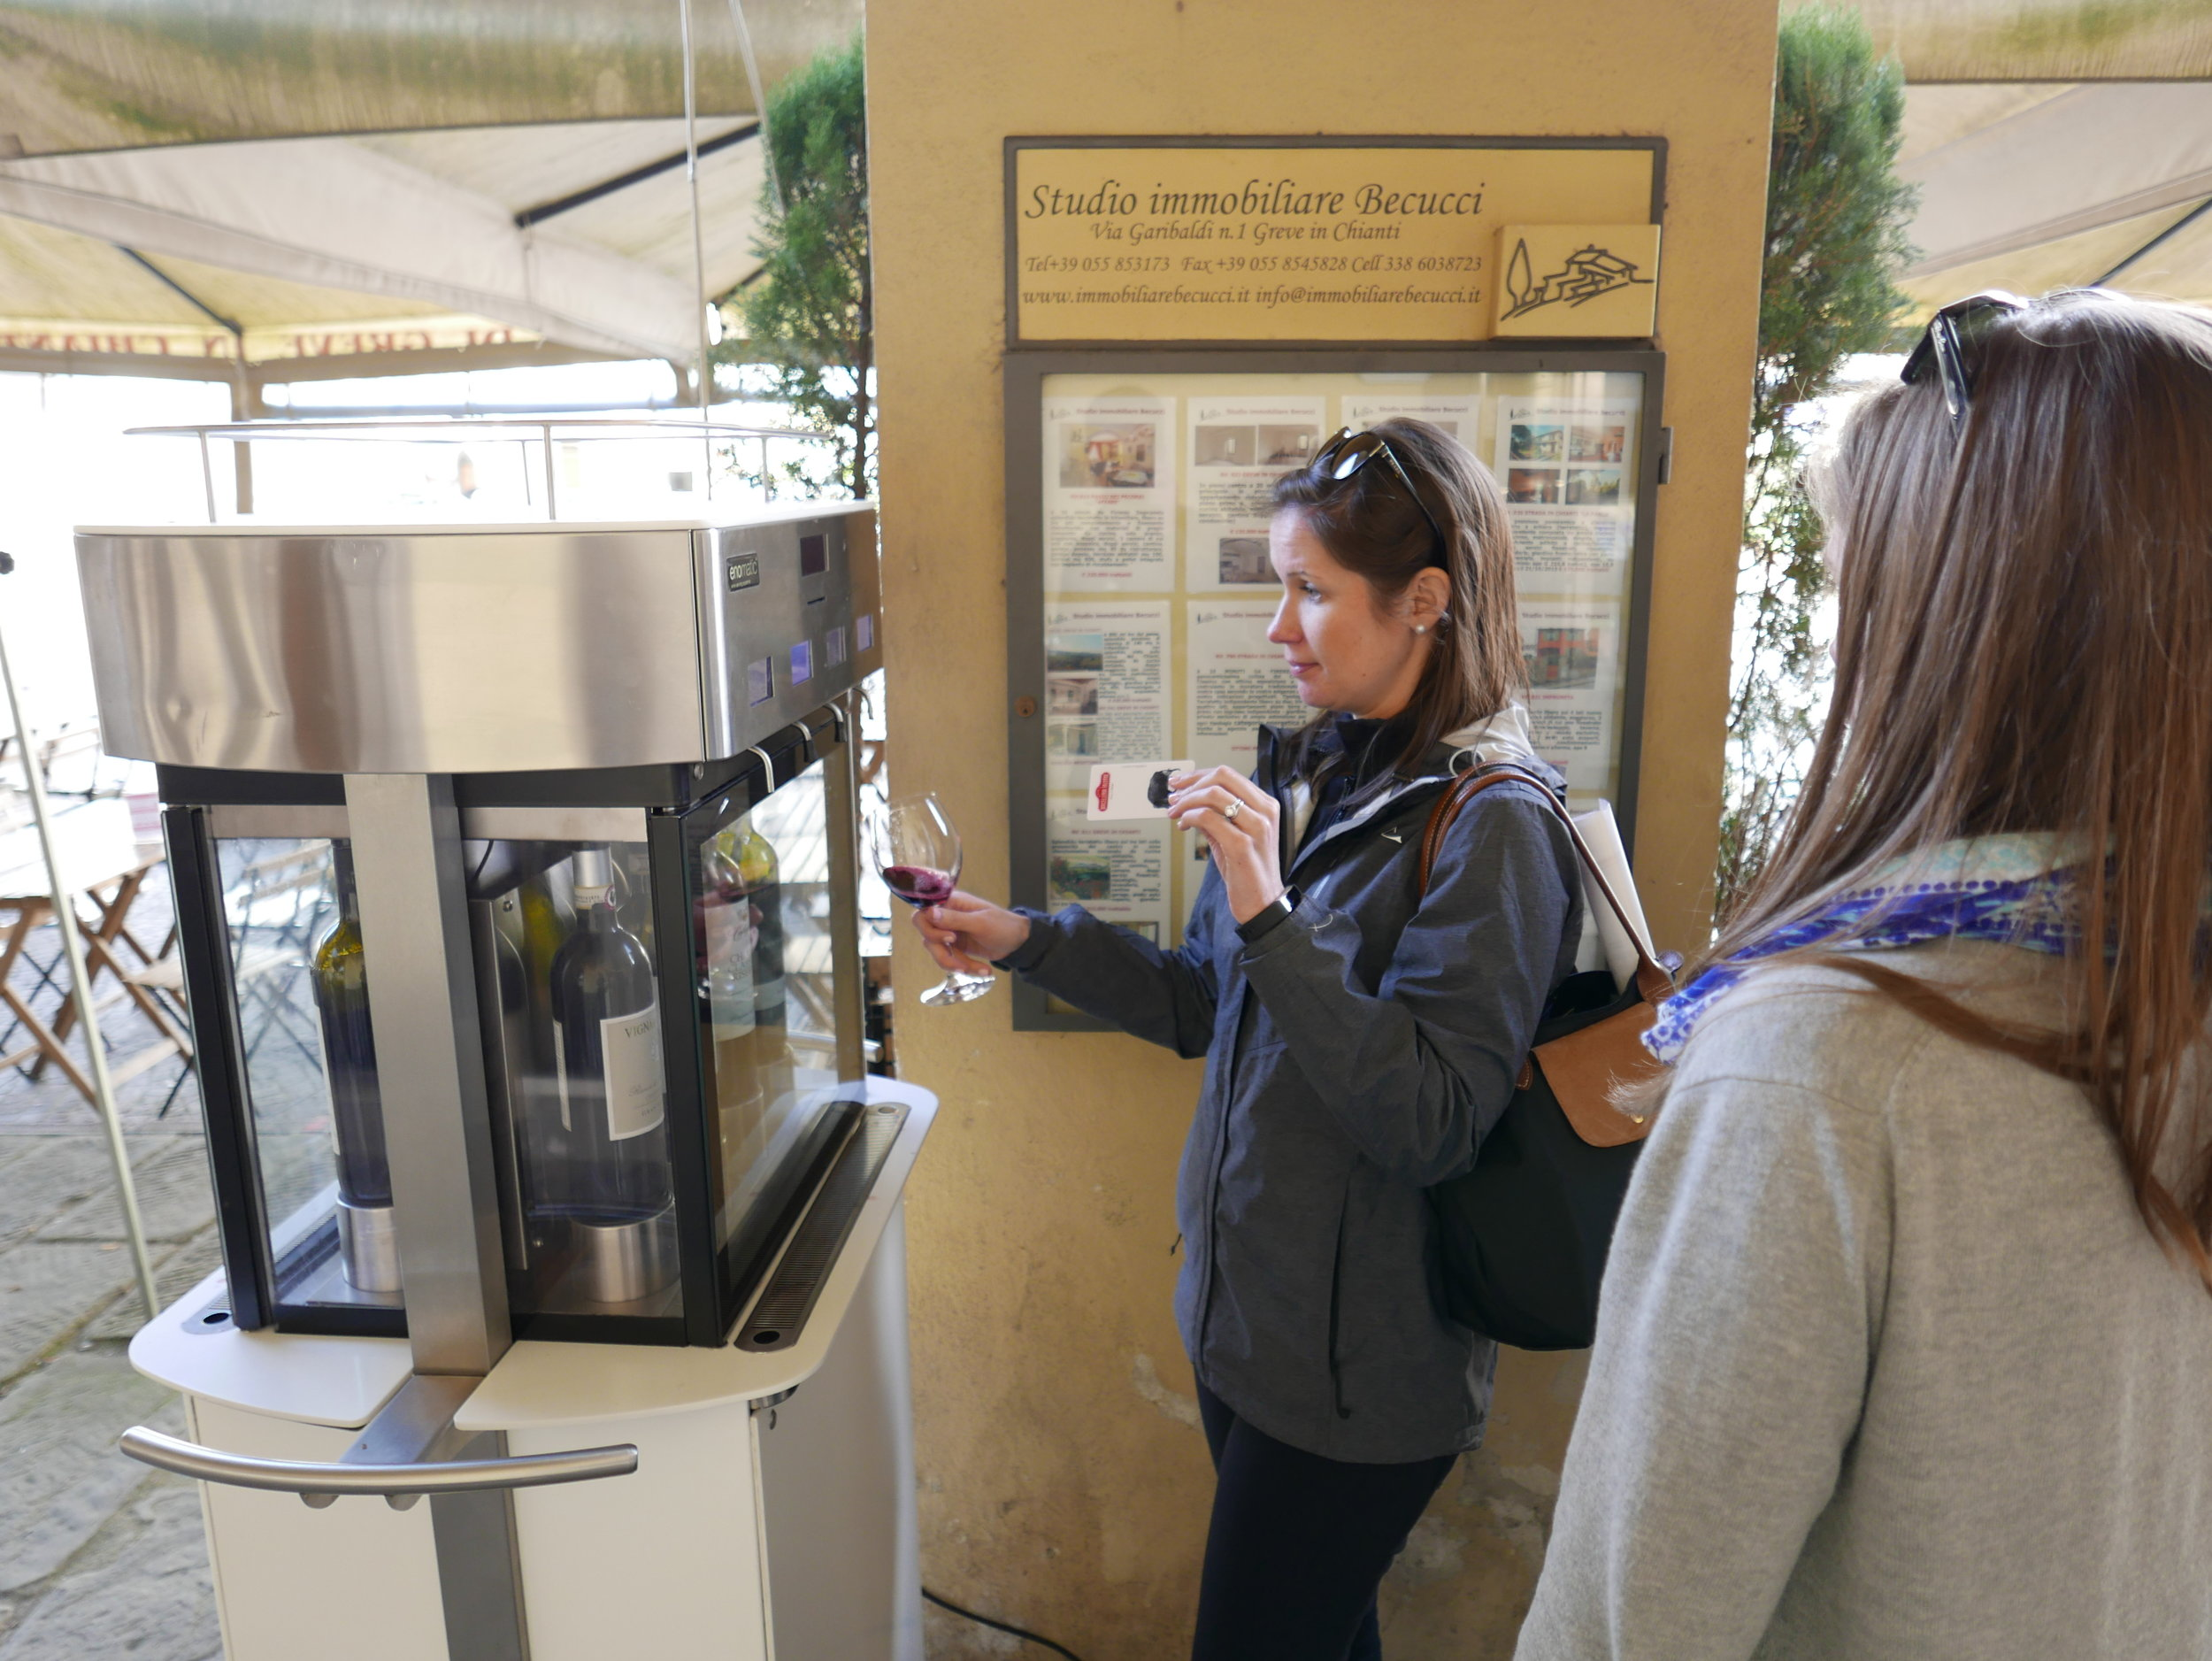 On our way back to Florence, we stopped in Greve in Chianti, where we were brought back to 2016 with an automatic wine tasting booth.